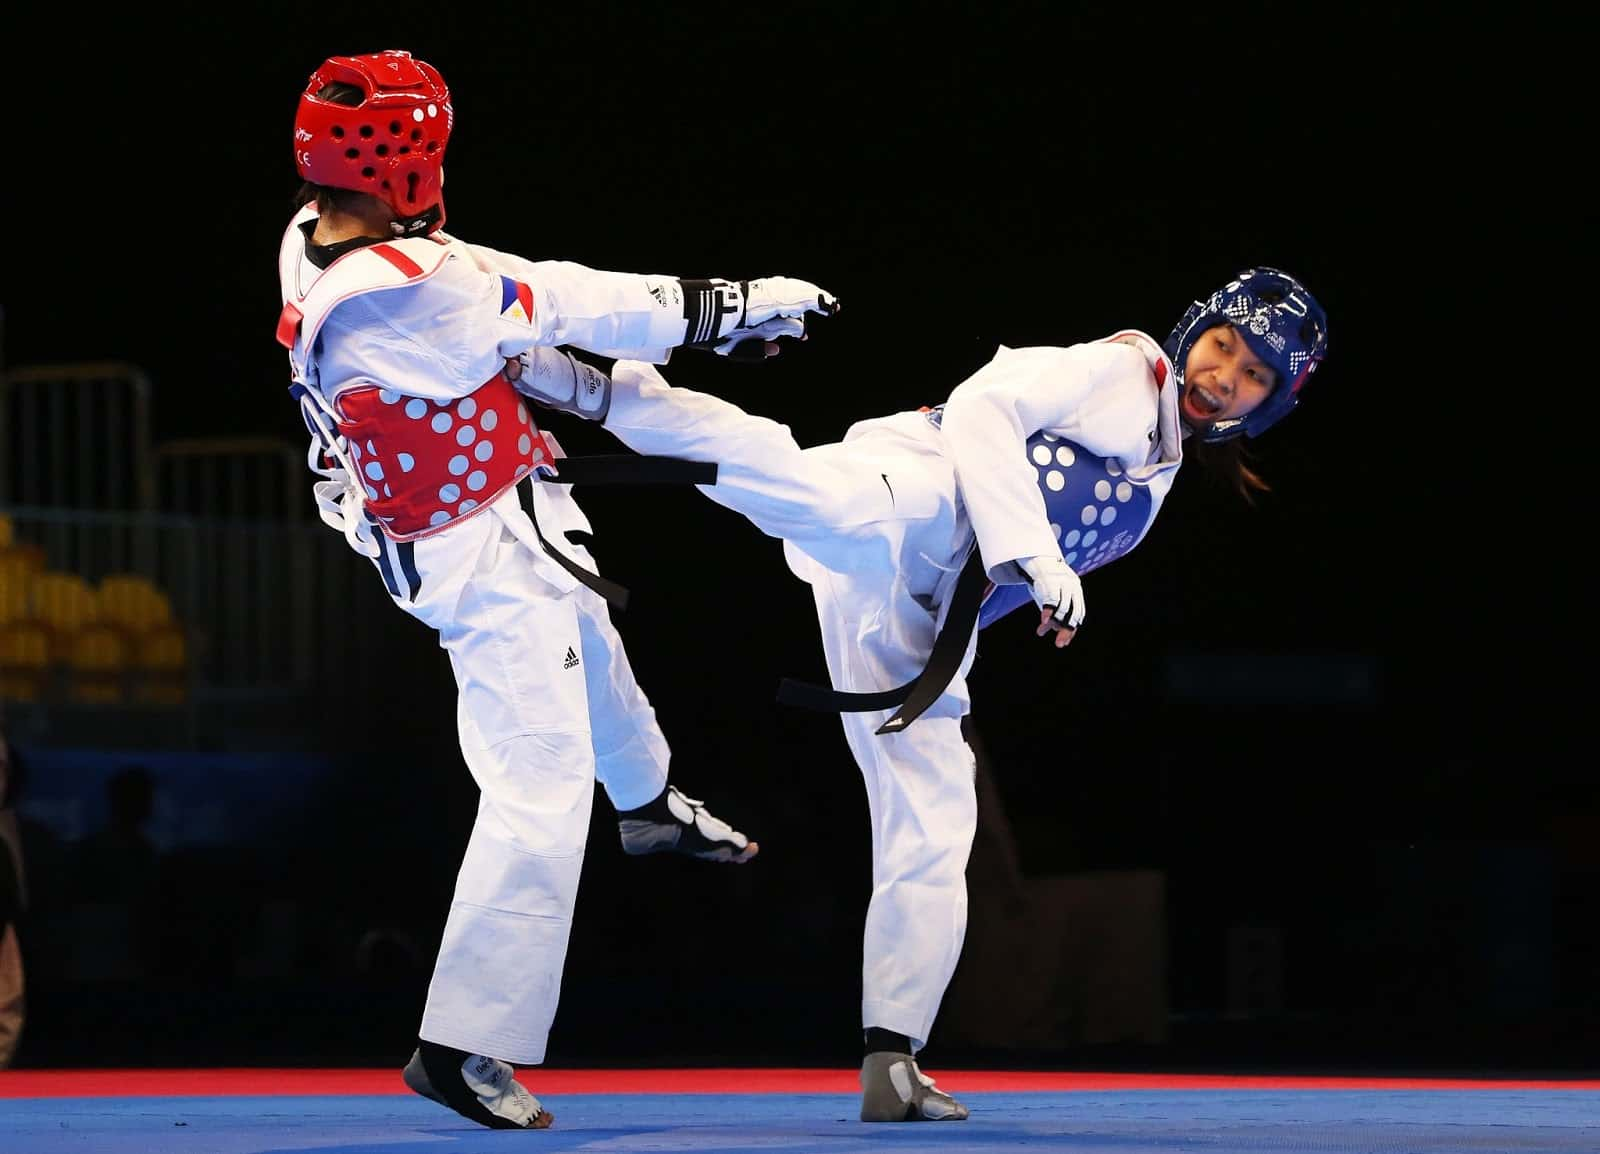 Tae Kwon Do Kickboxing – martial art